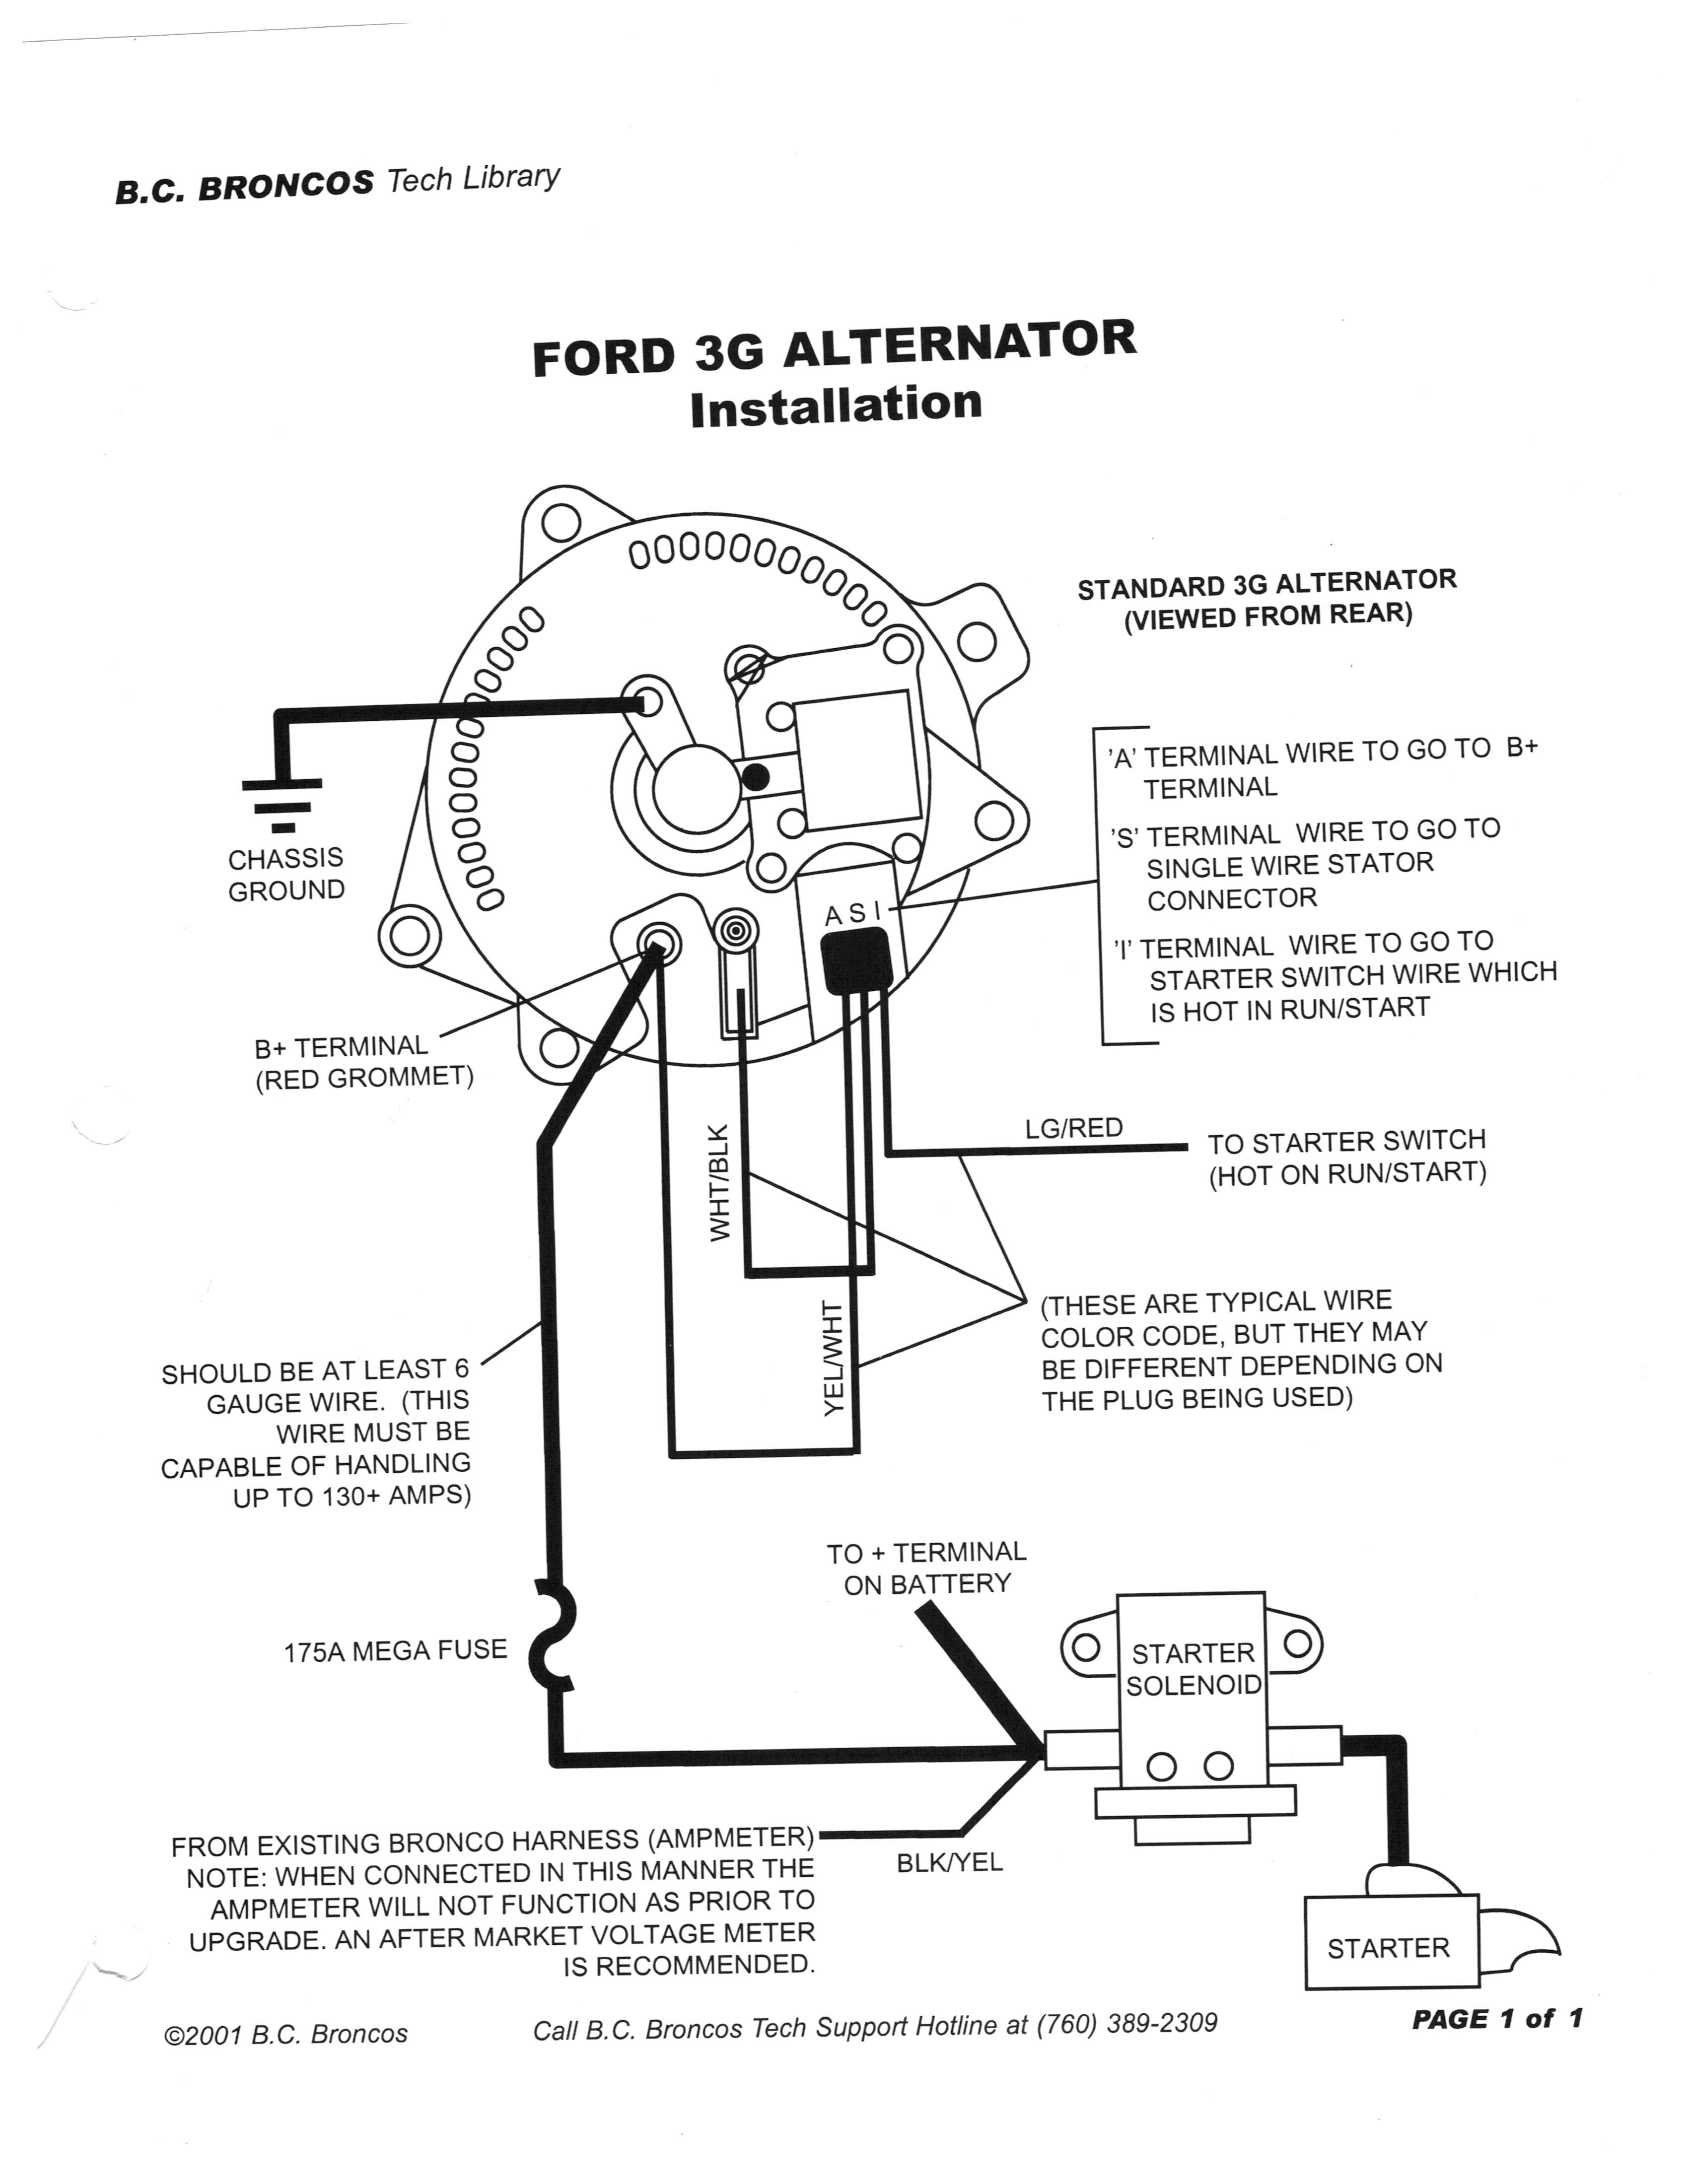 1967 Ford Mustang Alternator Wiring Diagram Diagram Base